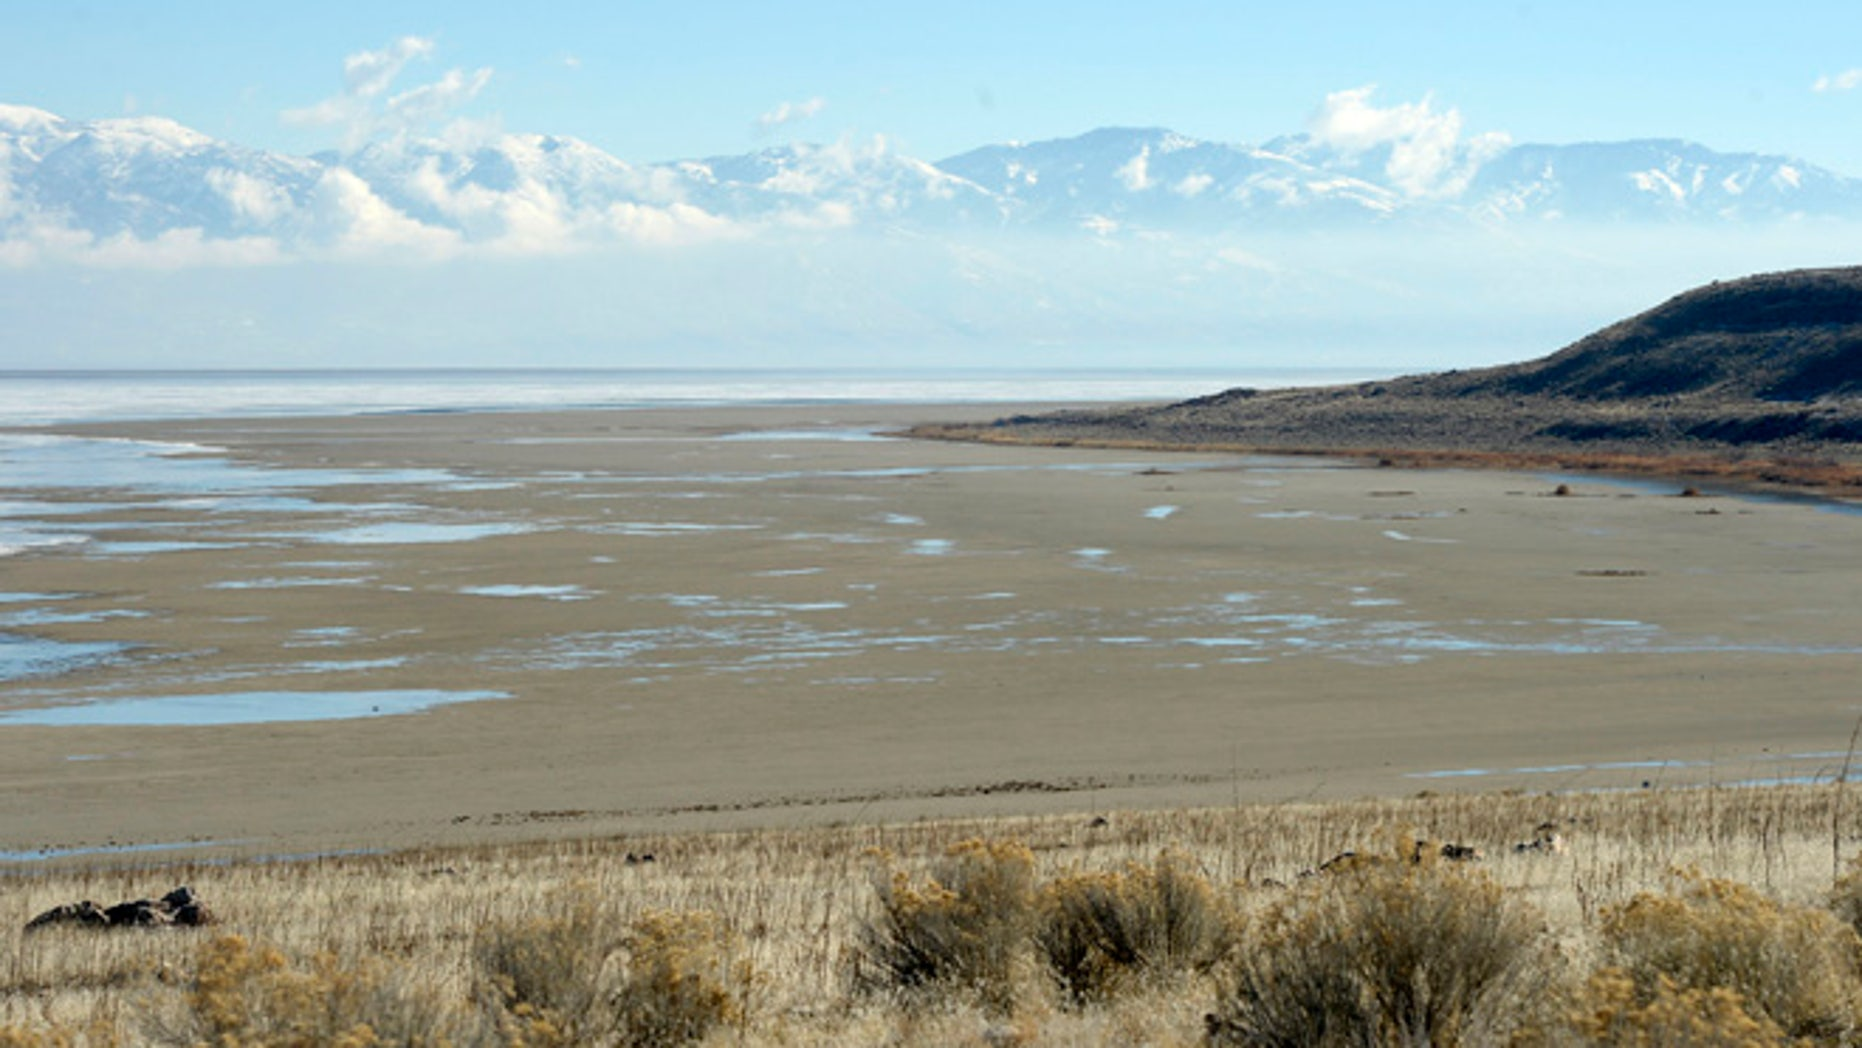 In this Wednesday Jan. 21, 2015, file photo, a view from the shore of Antelope Island looking east toward the Wasatch Mountains shows mudflats that are usually submerged by water of the Great Salt Lake in Utah.